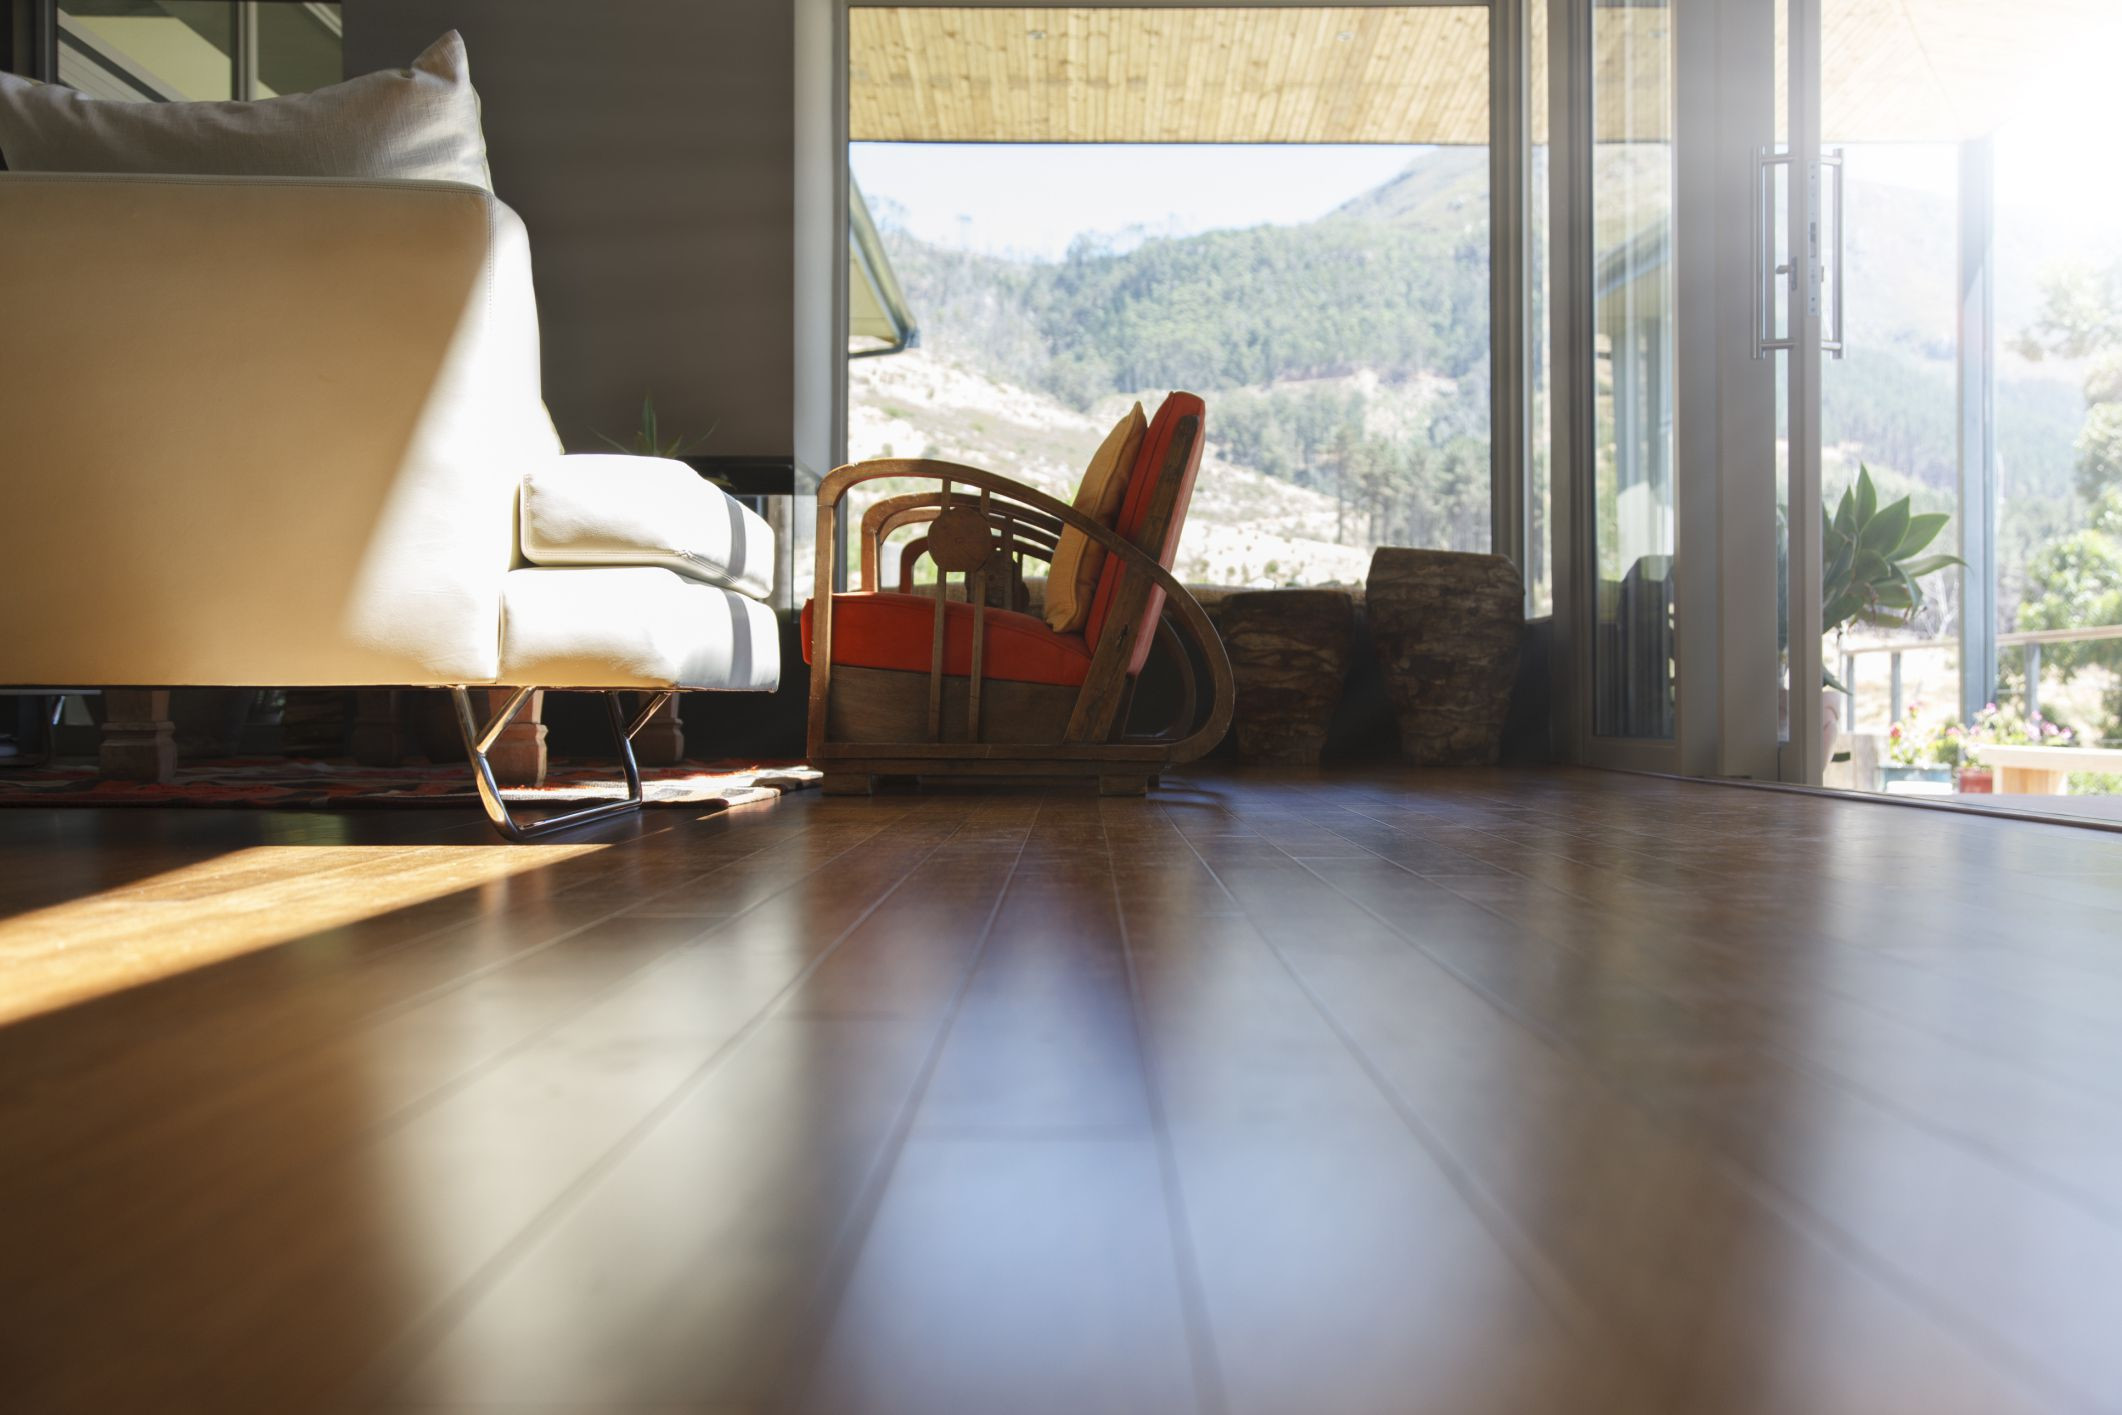 1 4 inch engineered hardwood flooring of pros and cons of bellawood flooring from lumber liquidators for exotic hardwood flooring 525439899 56a49d3a3df78cf77283453d